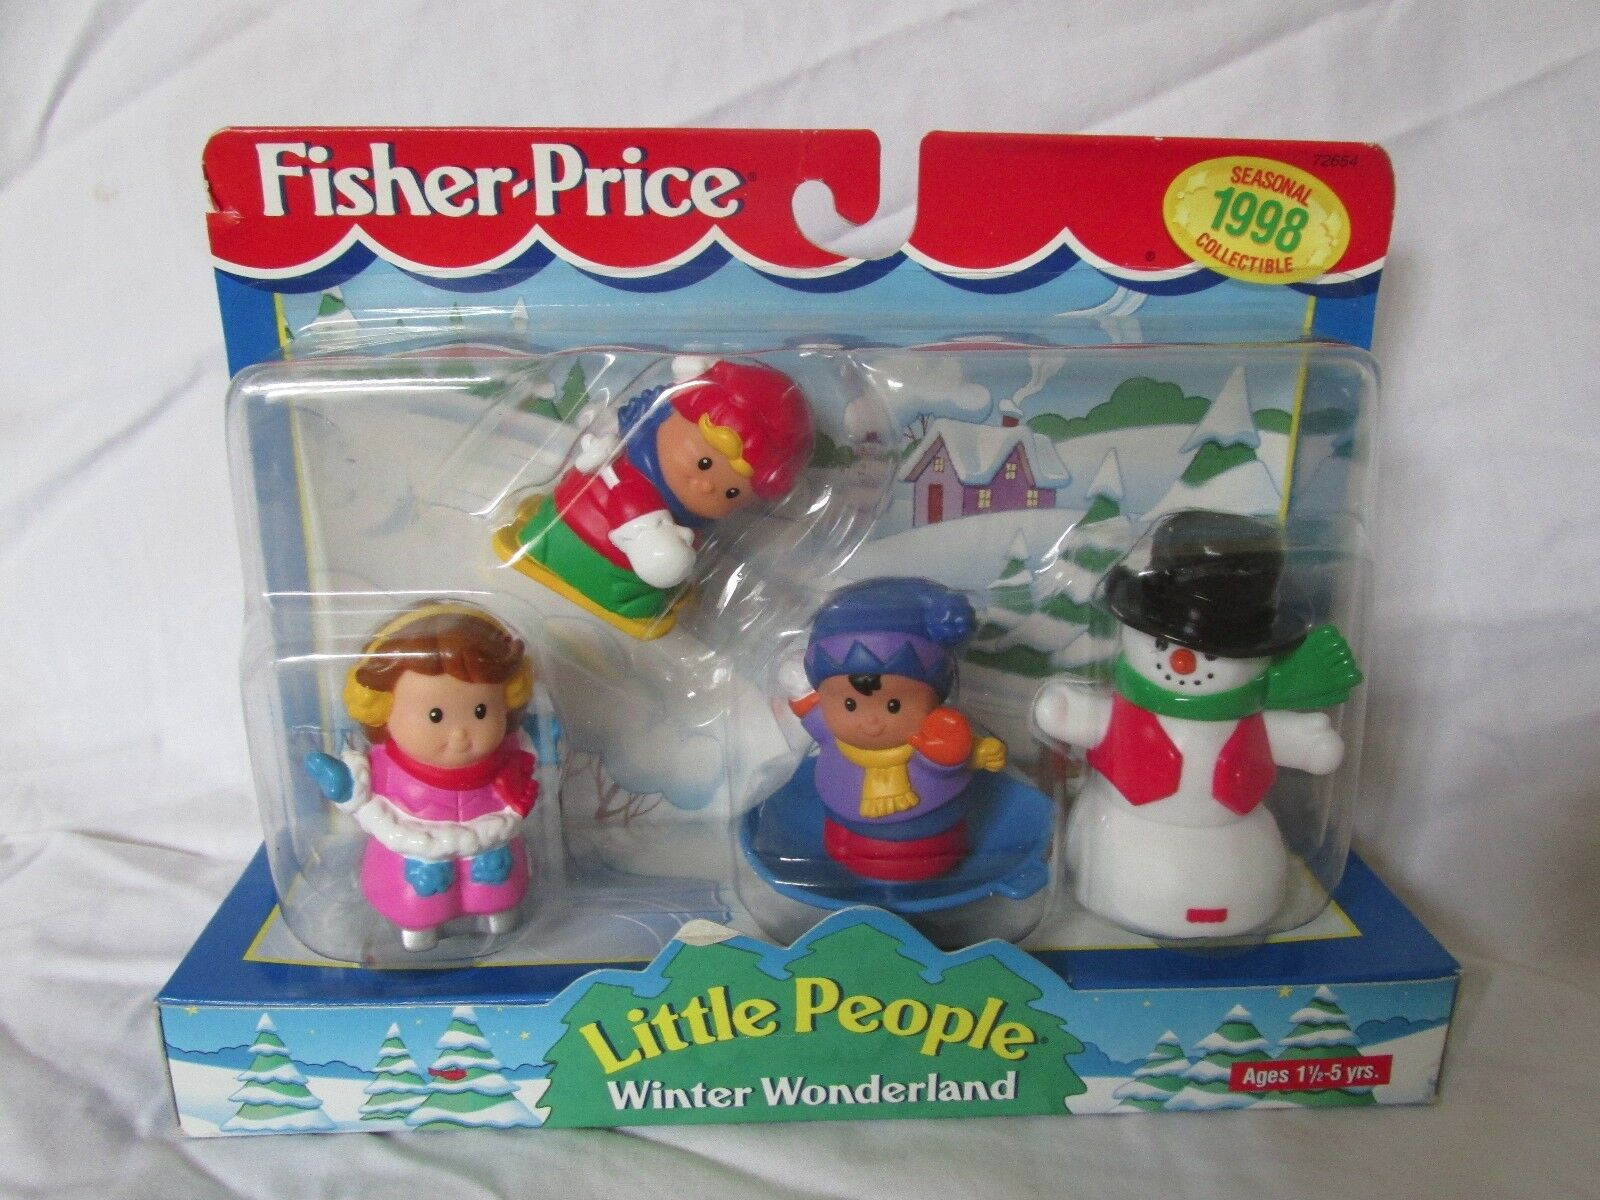 BRAND NEW IN BOX - FISHER PRICE LITTLE PEOPLE - CHRISTMAS WINTER WONDERLAND 1998